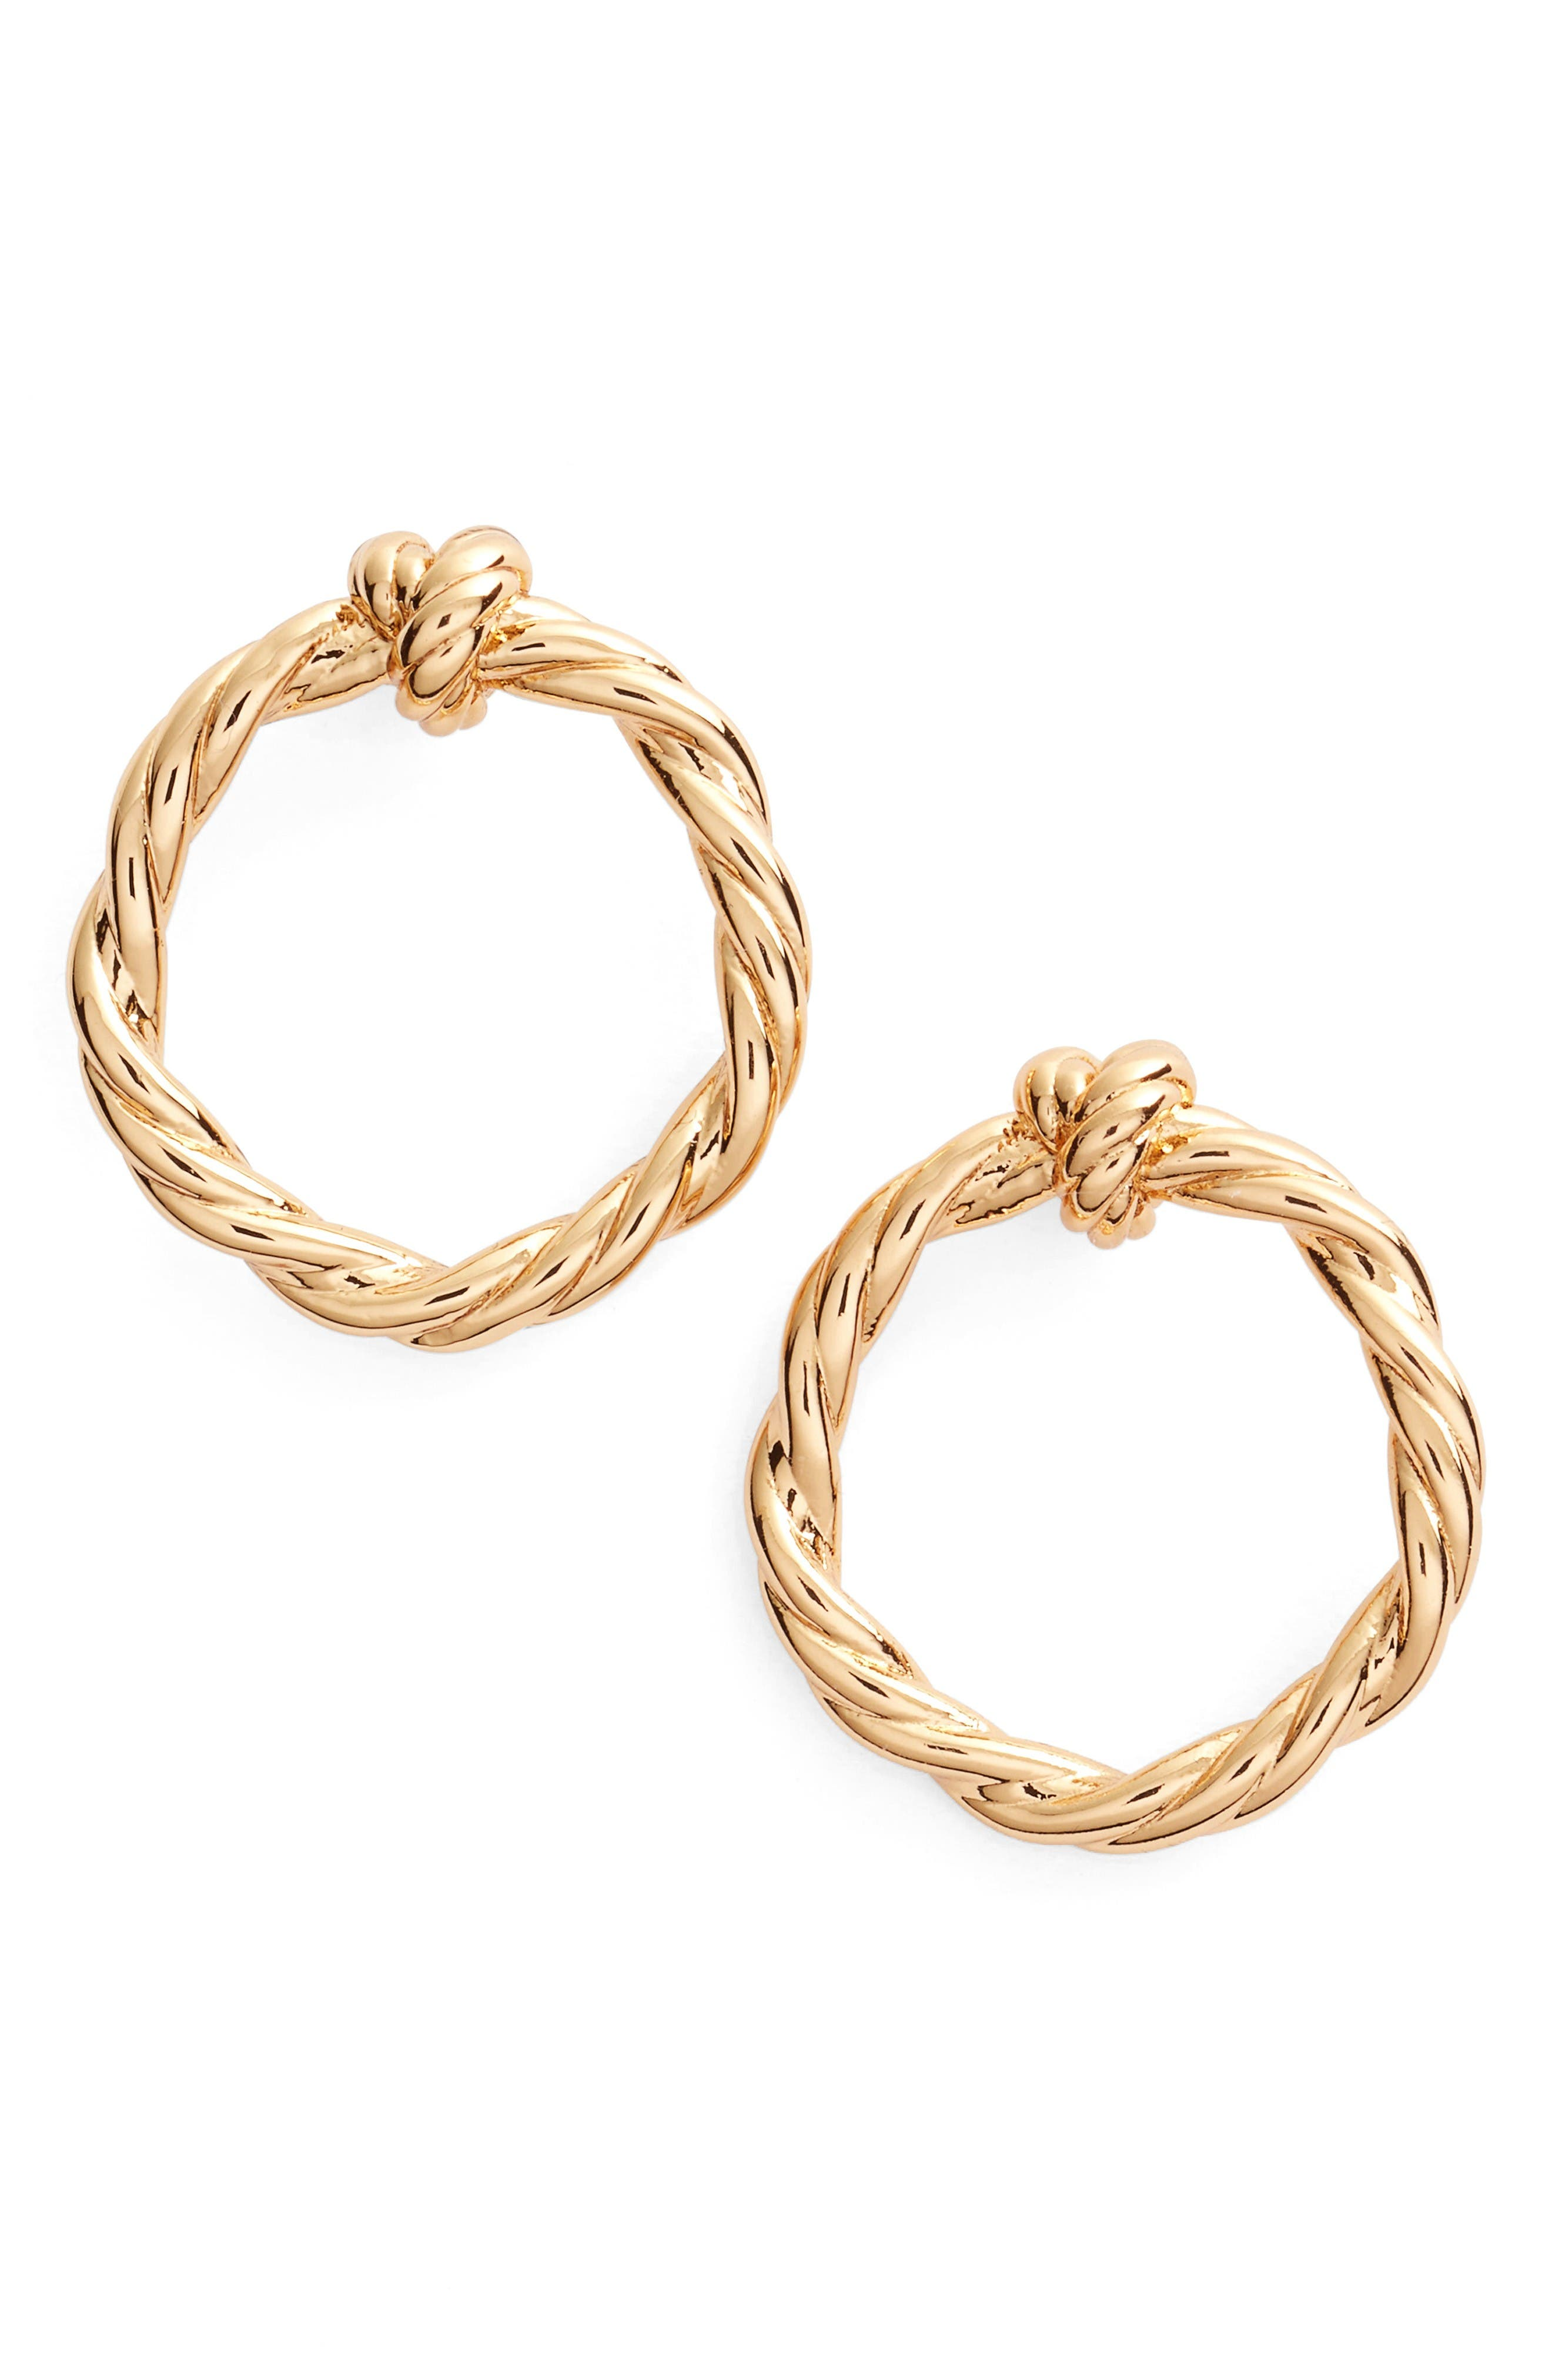 Alternate Image 1 Selected - Tory Burch Twisted Knot Stud Earrings